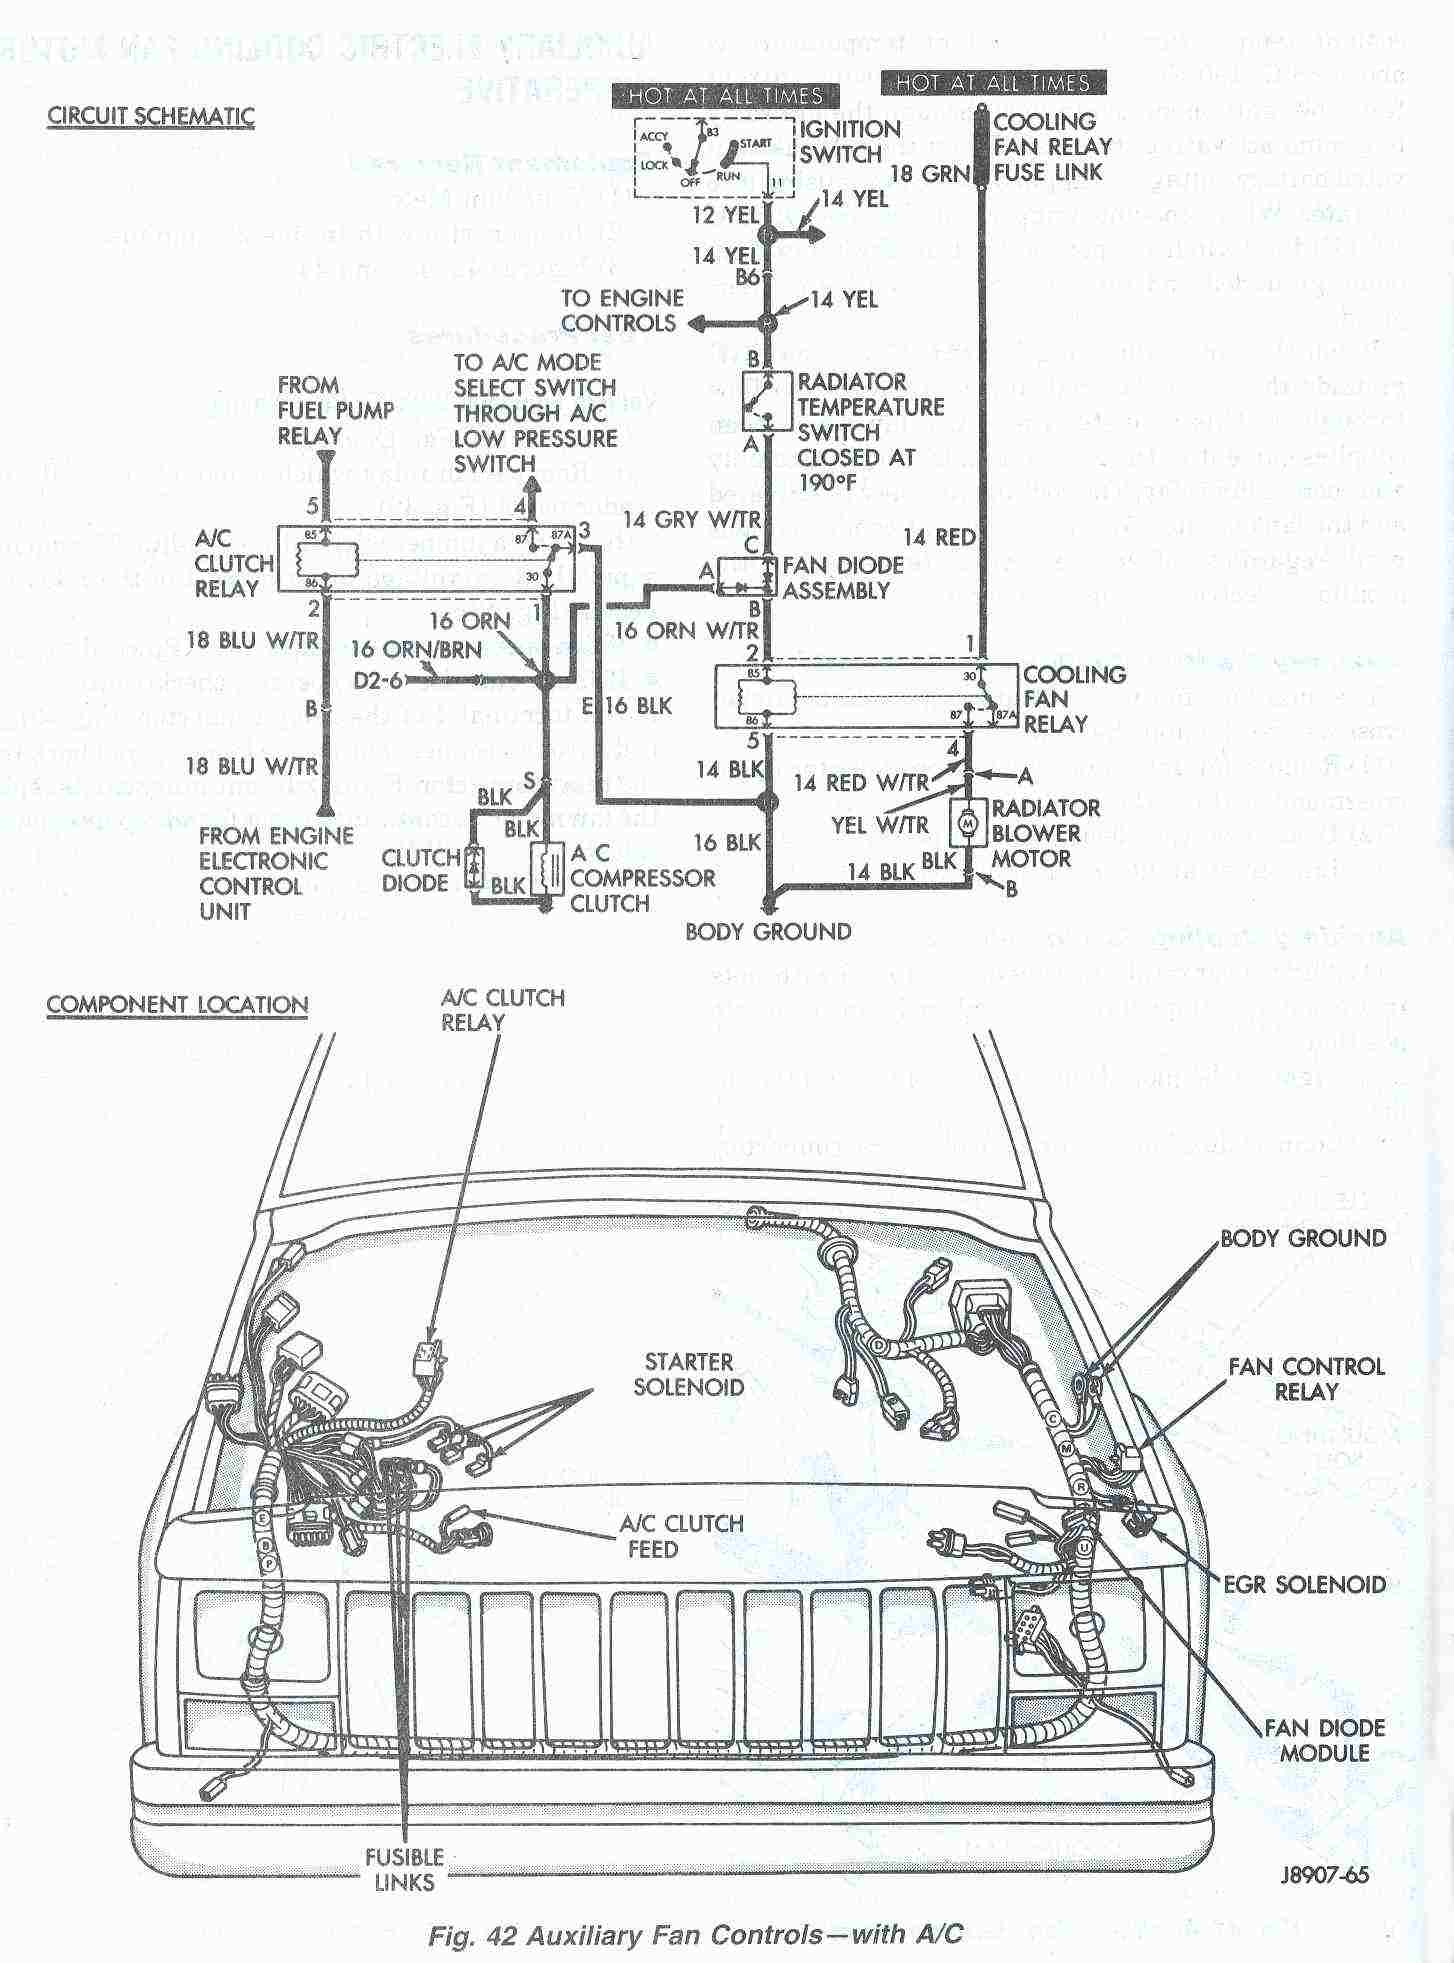 Auxiliary_Fan_Schematic_Fig_42 jeep cherokee cooling system electric cooling fan cooling fan relay wiring diagram at alyssarenee.co